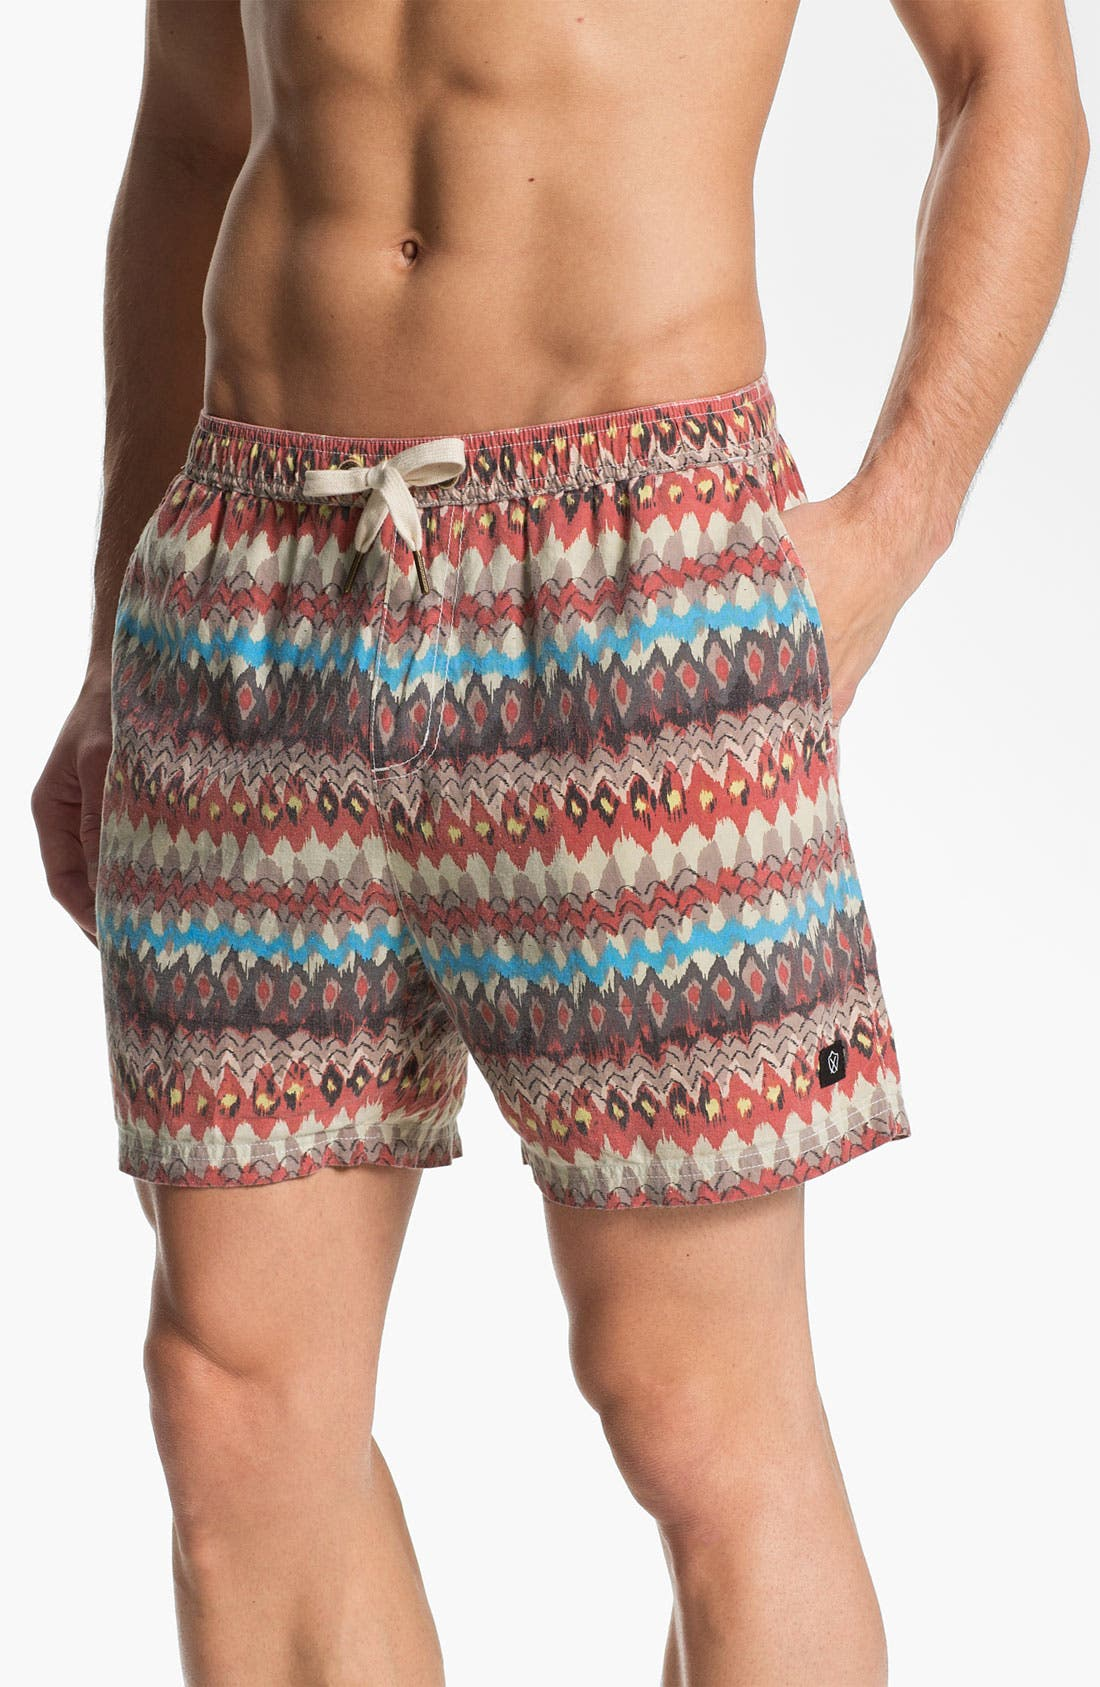 Alternate Image 1 Selected - Zanerobe 'Amitola' Swim Trunks (Online Exclusive)